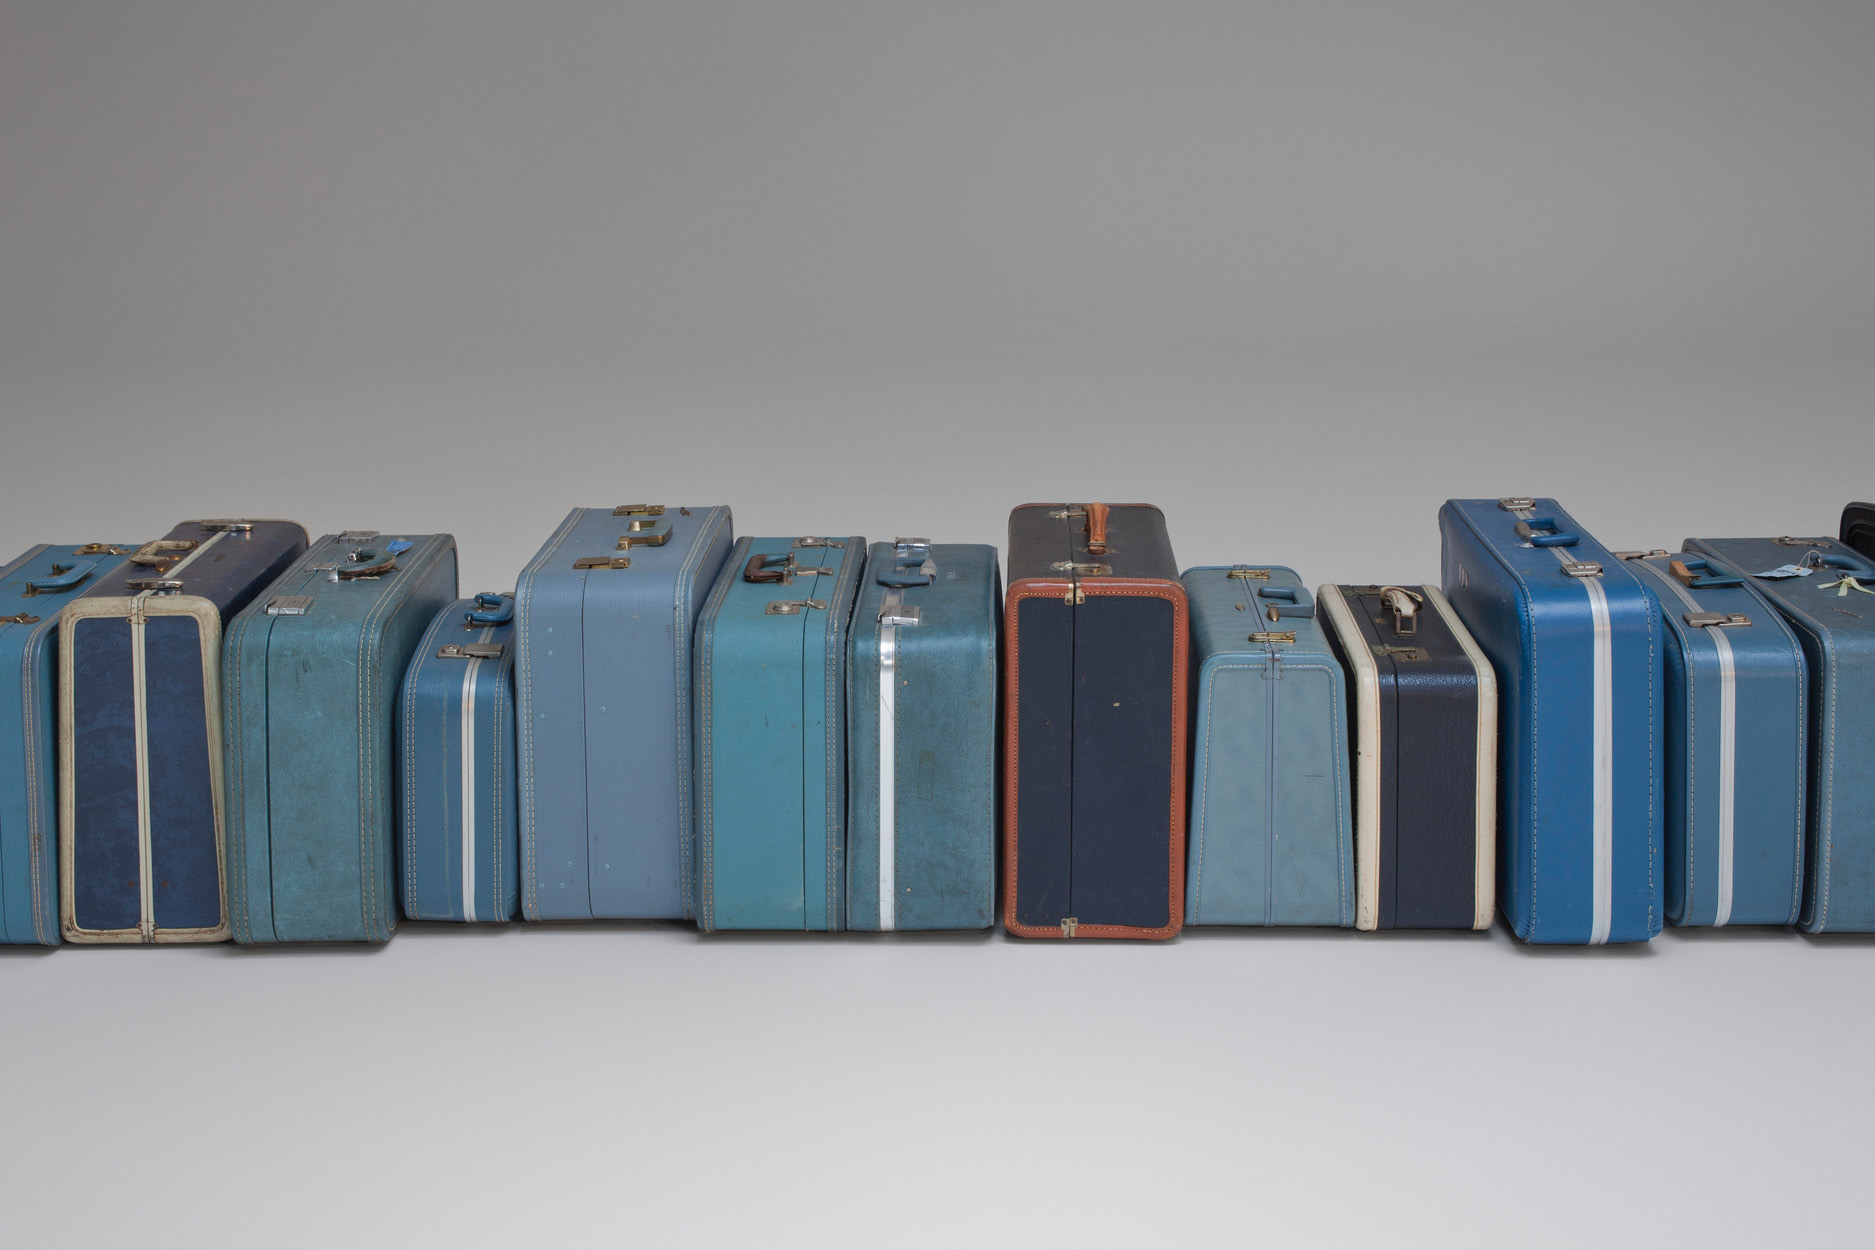 Zoe Leonard <i>1961</i>, 2002 - ongoing. Blue suitcases, Dimensions variable. Courtesy of the artist and Galerie Gisela Capitain, Cologne, Germany. Photo by Bill Jacobson.